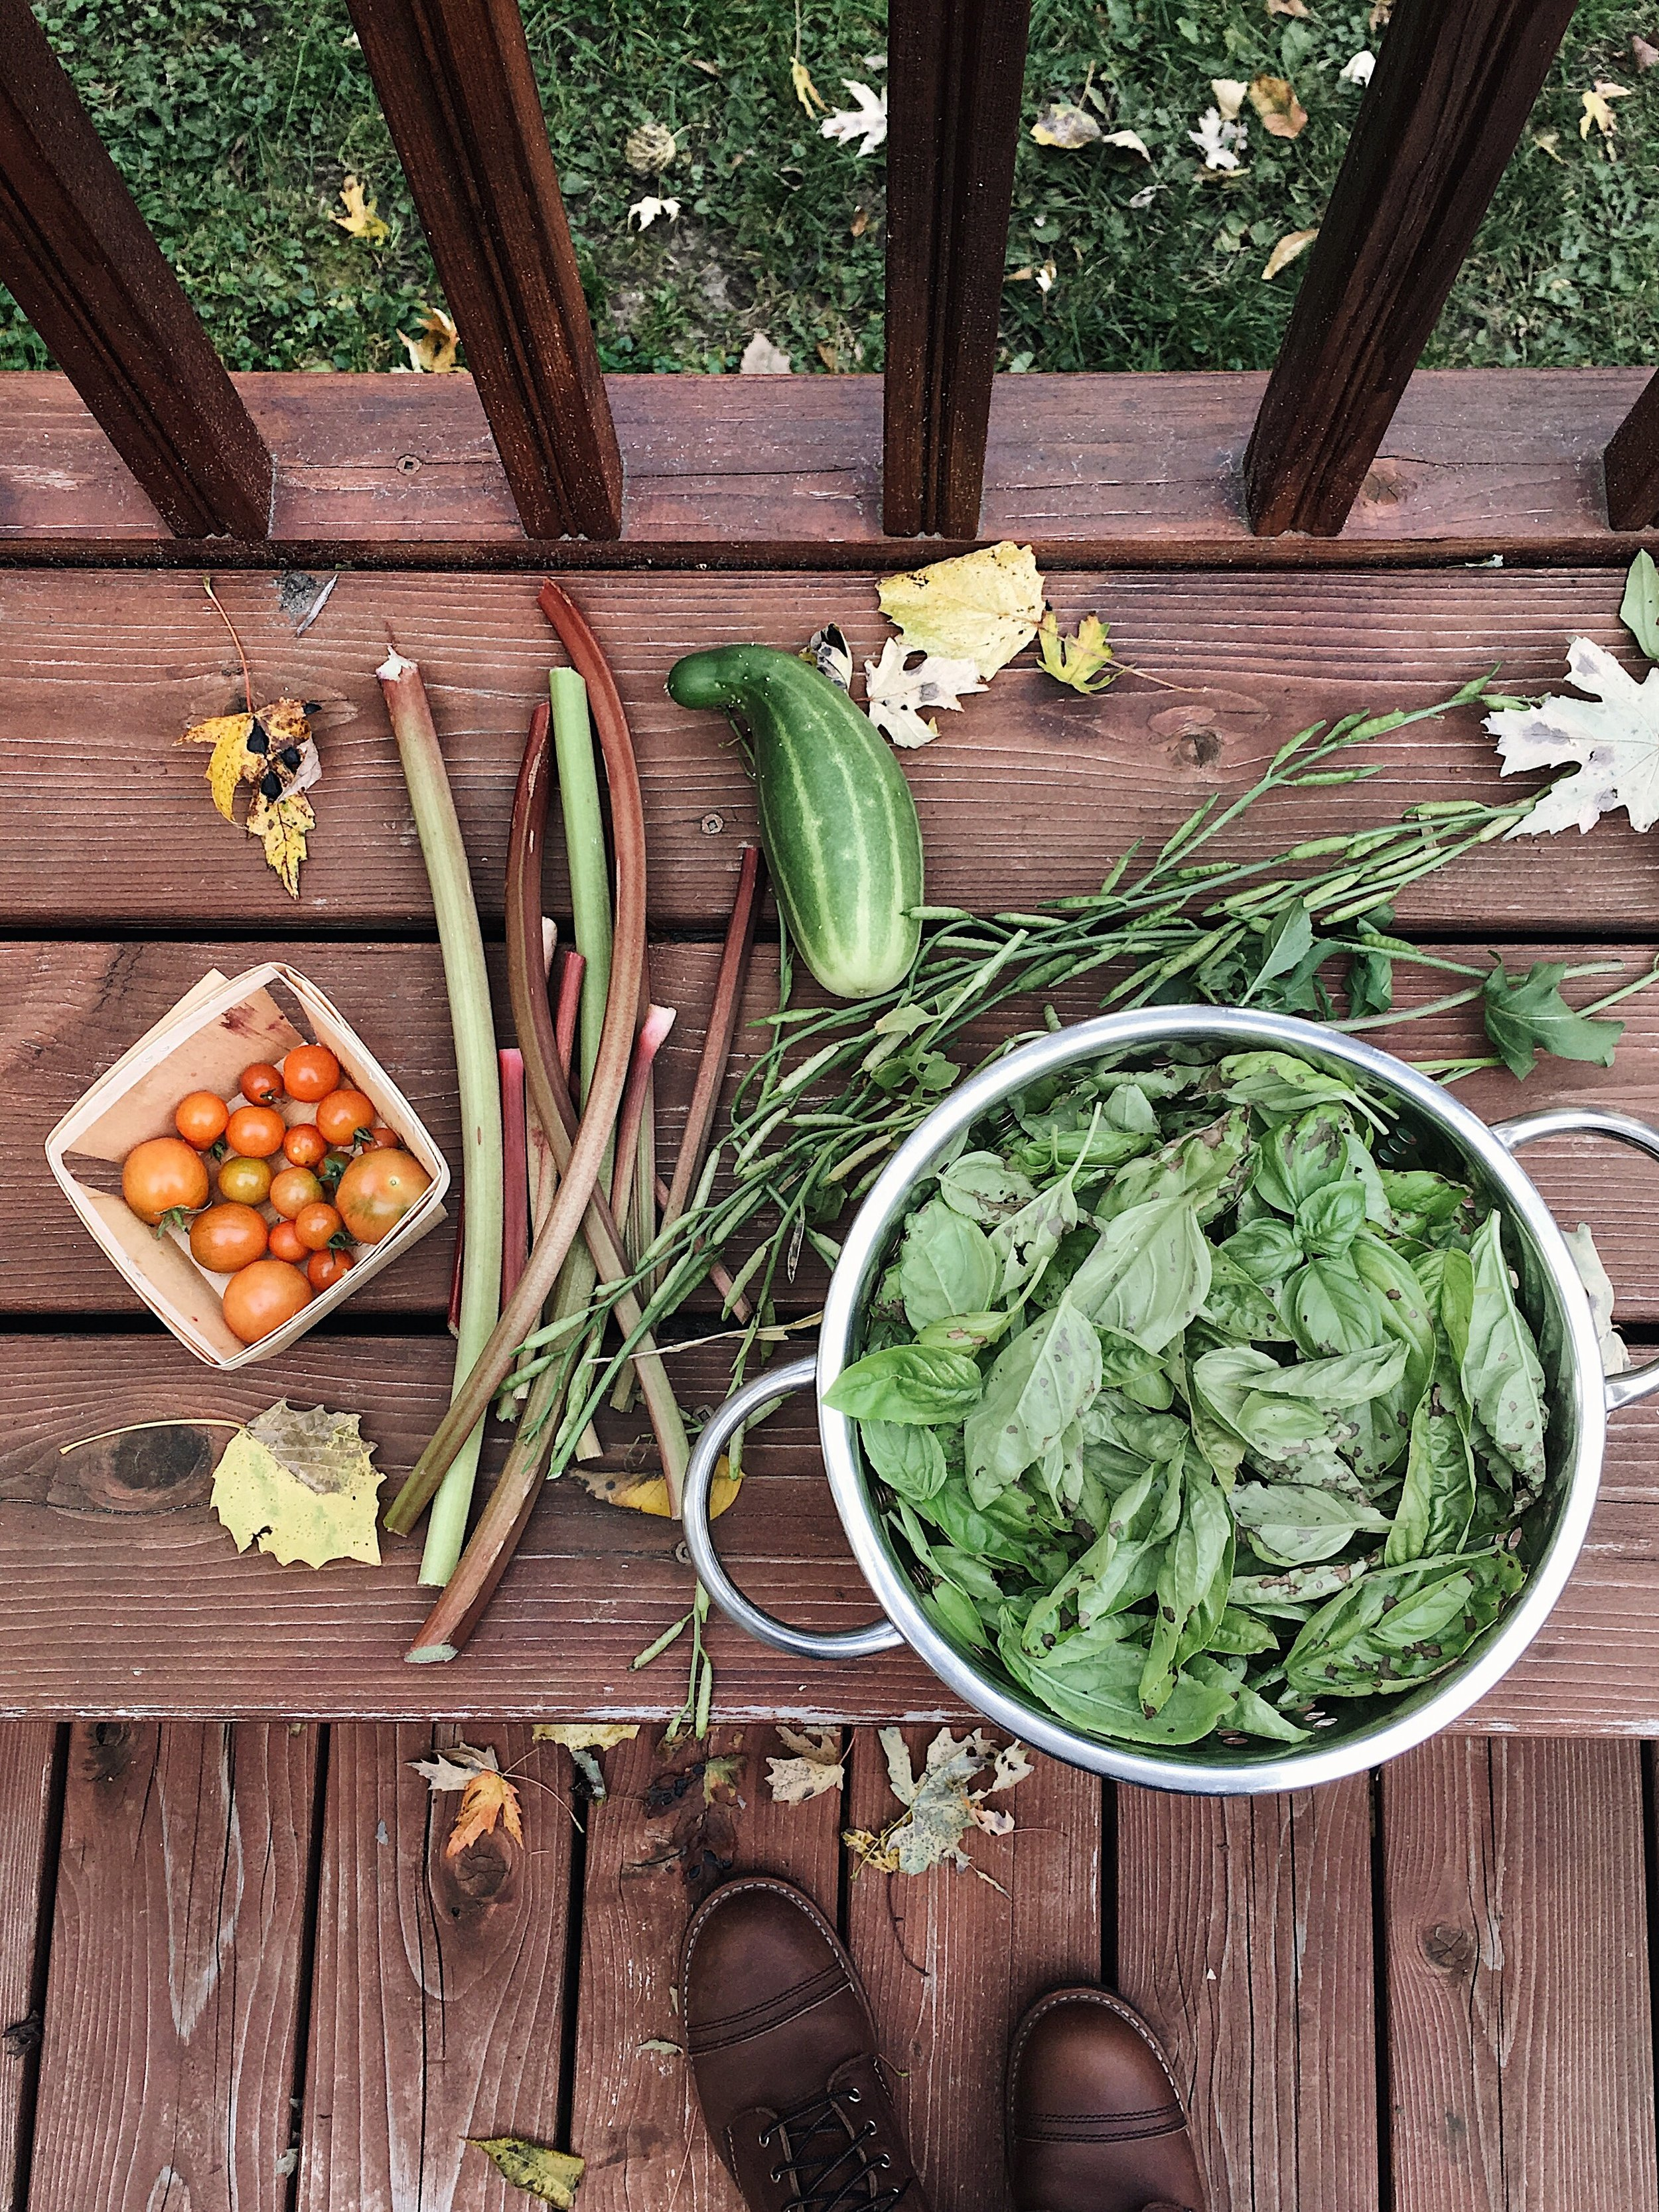 """THE """"LAST OF THE GARDEN"""" HARVESTS FROM OUR 2017 SEASON. WE MADE A CELEBRATORY BATCH OF PESTO WITH THAT LOAD OF BASIL!"""